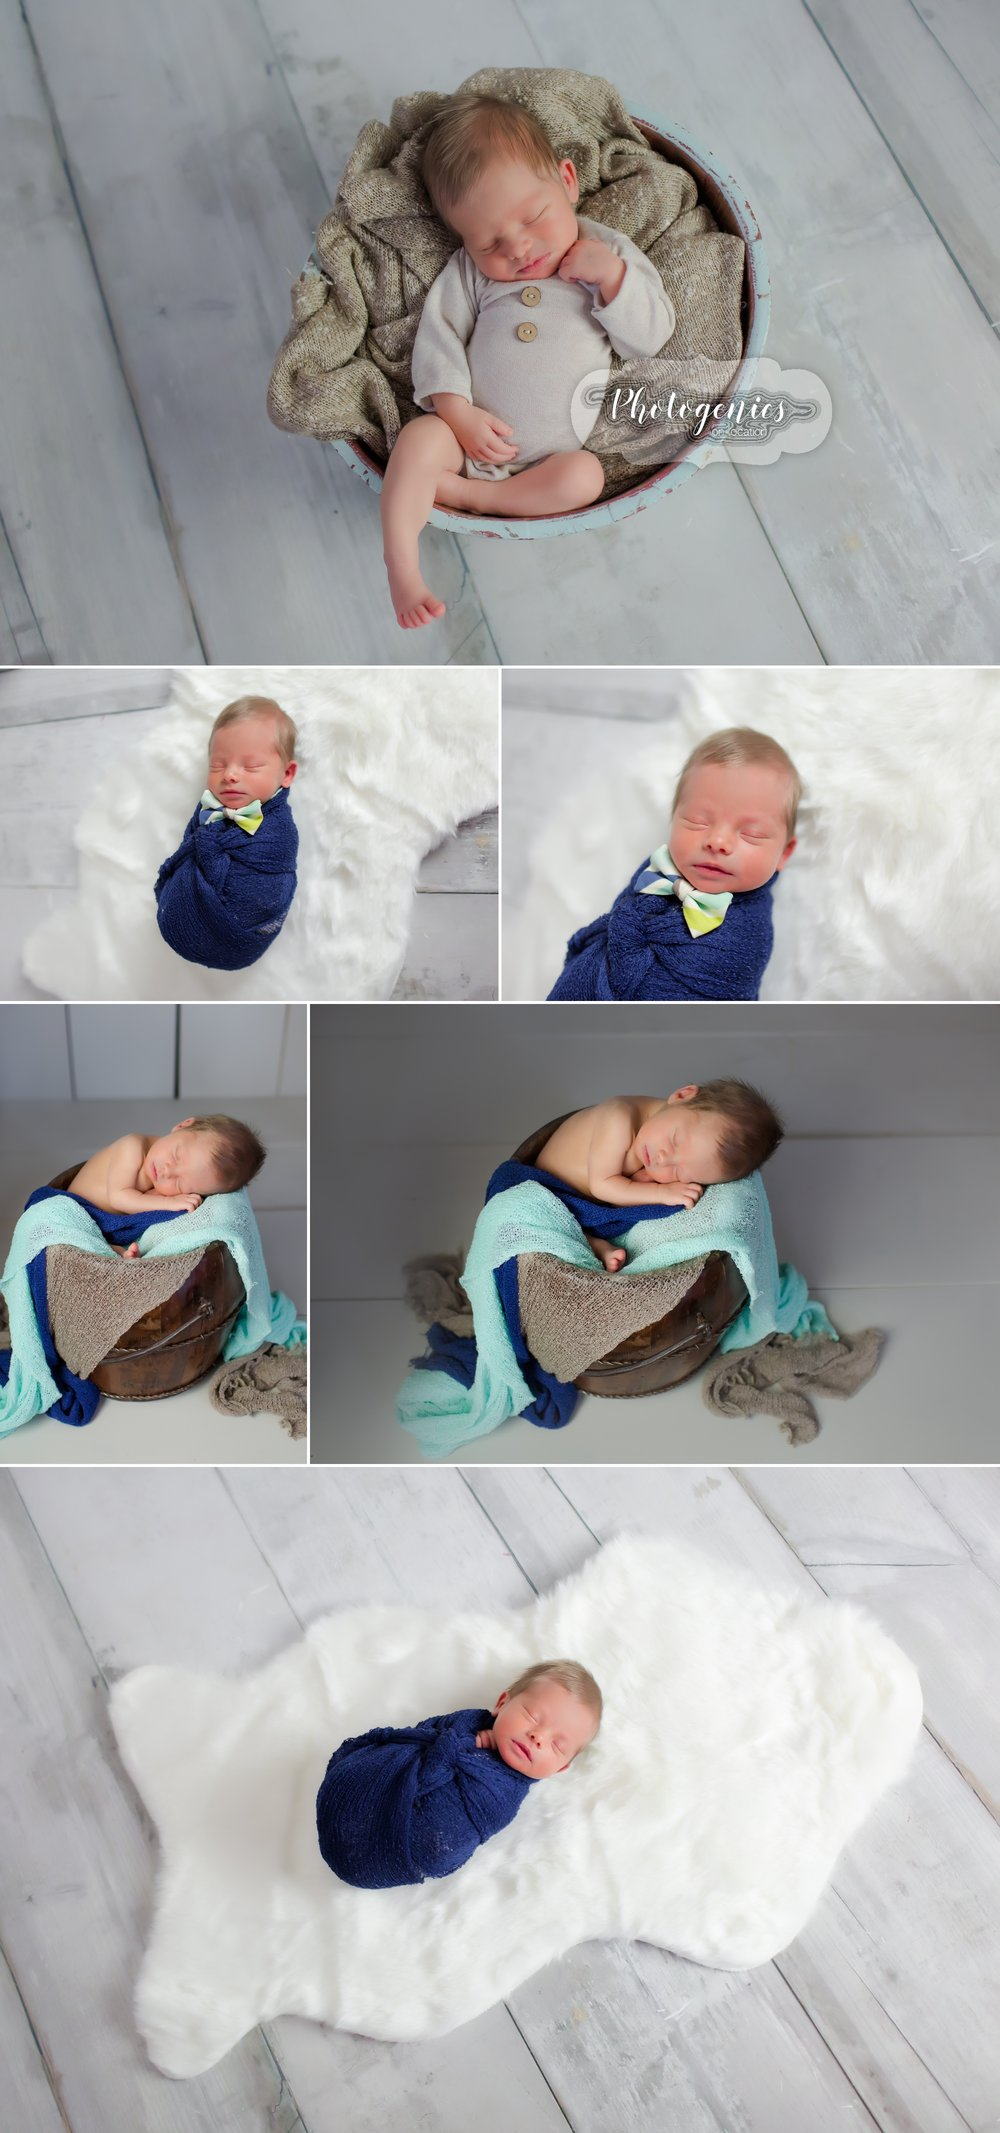 newborn_boy_photography_ideas_romper_hair_props_neutrals_simple_pictures_studio_baby_bowtie_shades_of_blue_teal_bucket_wood 1.jpg